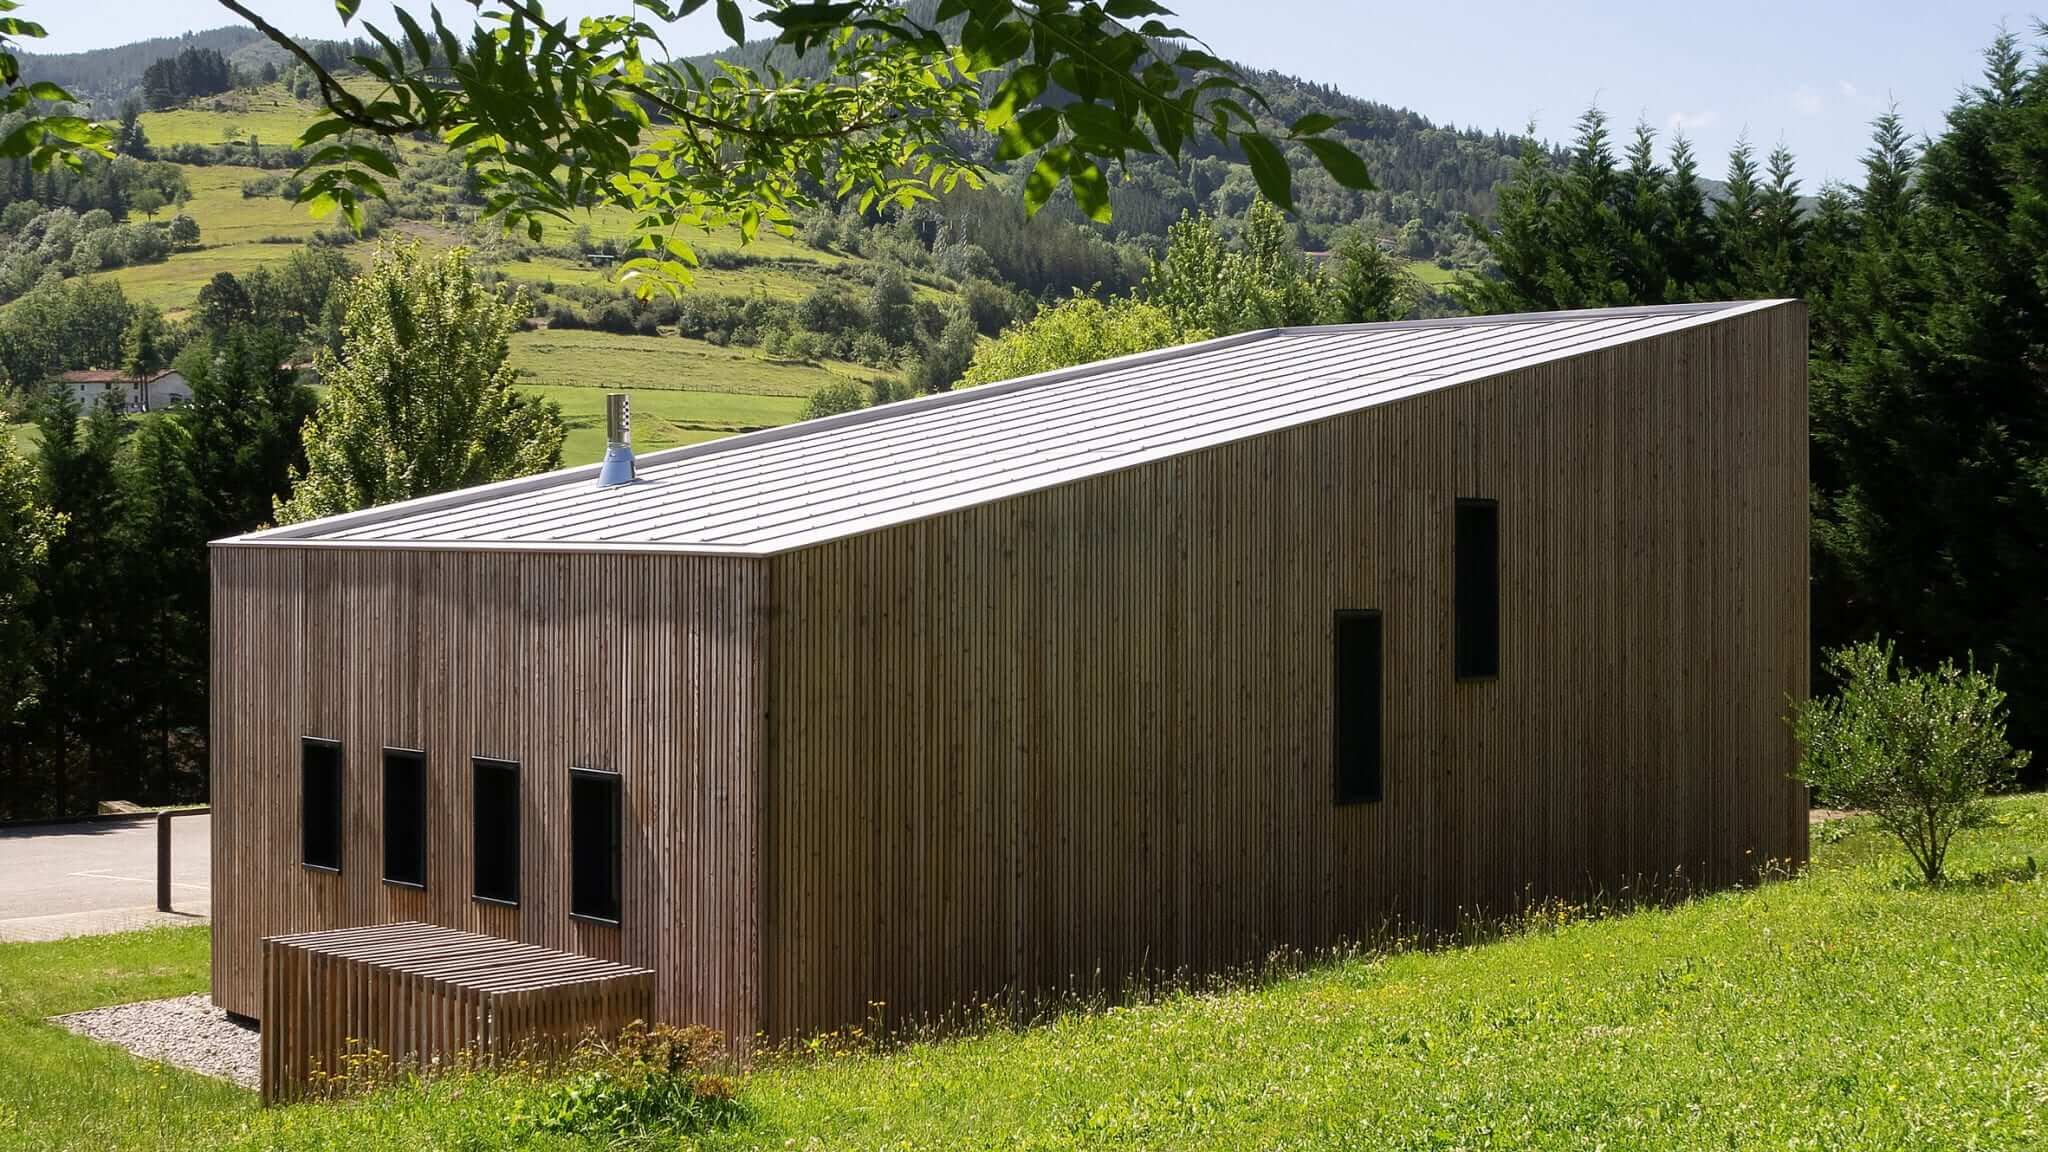 Pilgrim's House is a timber-clad hostel in the Basque countryside